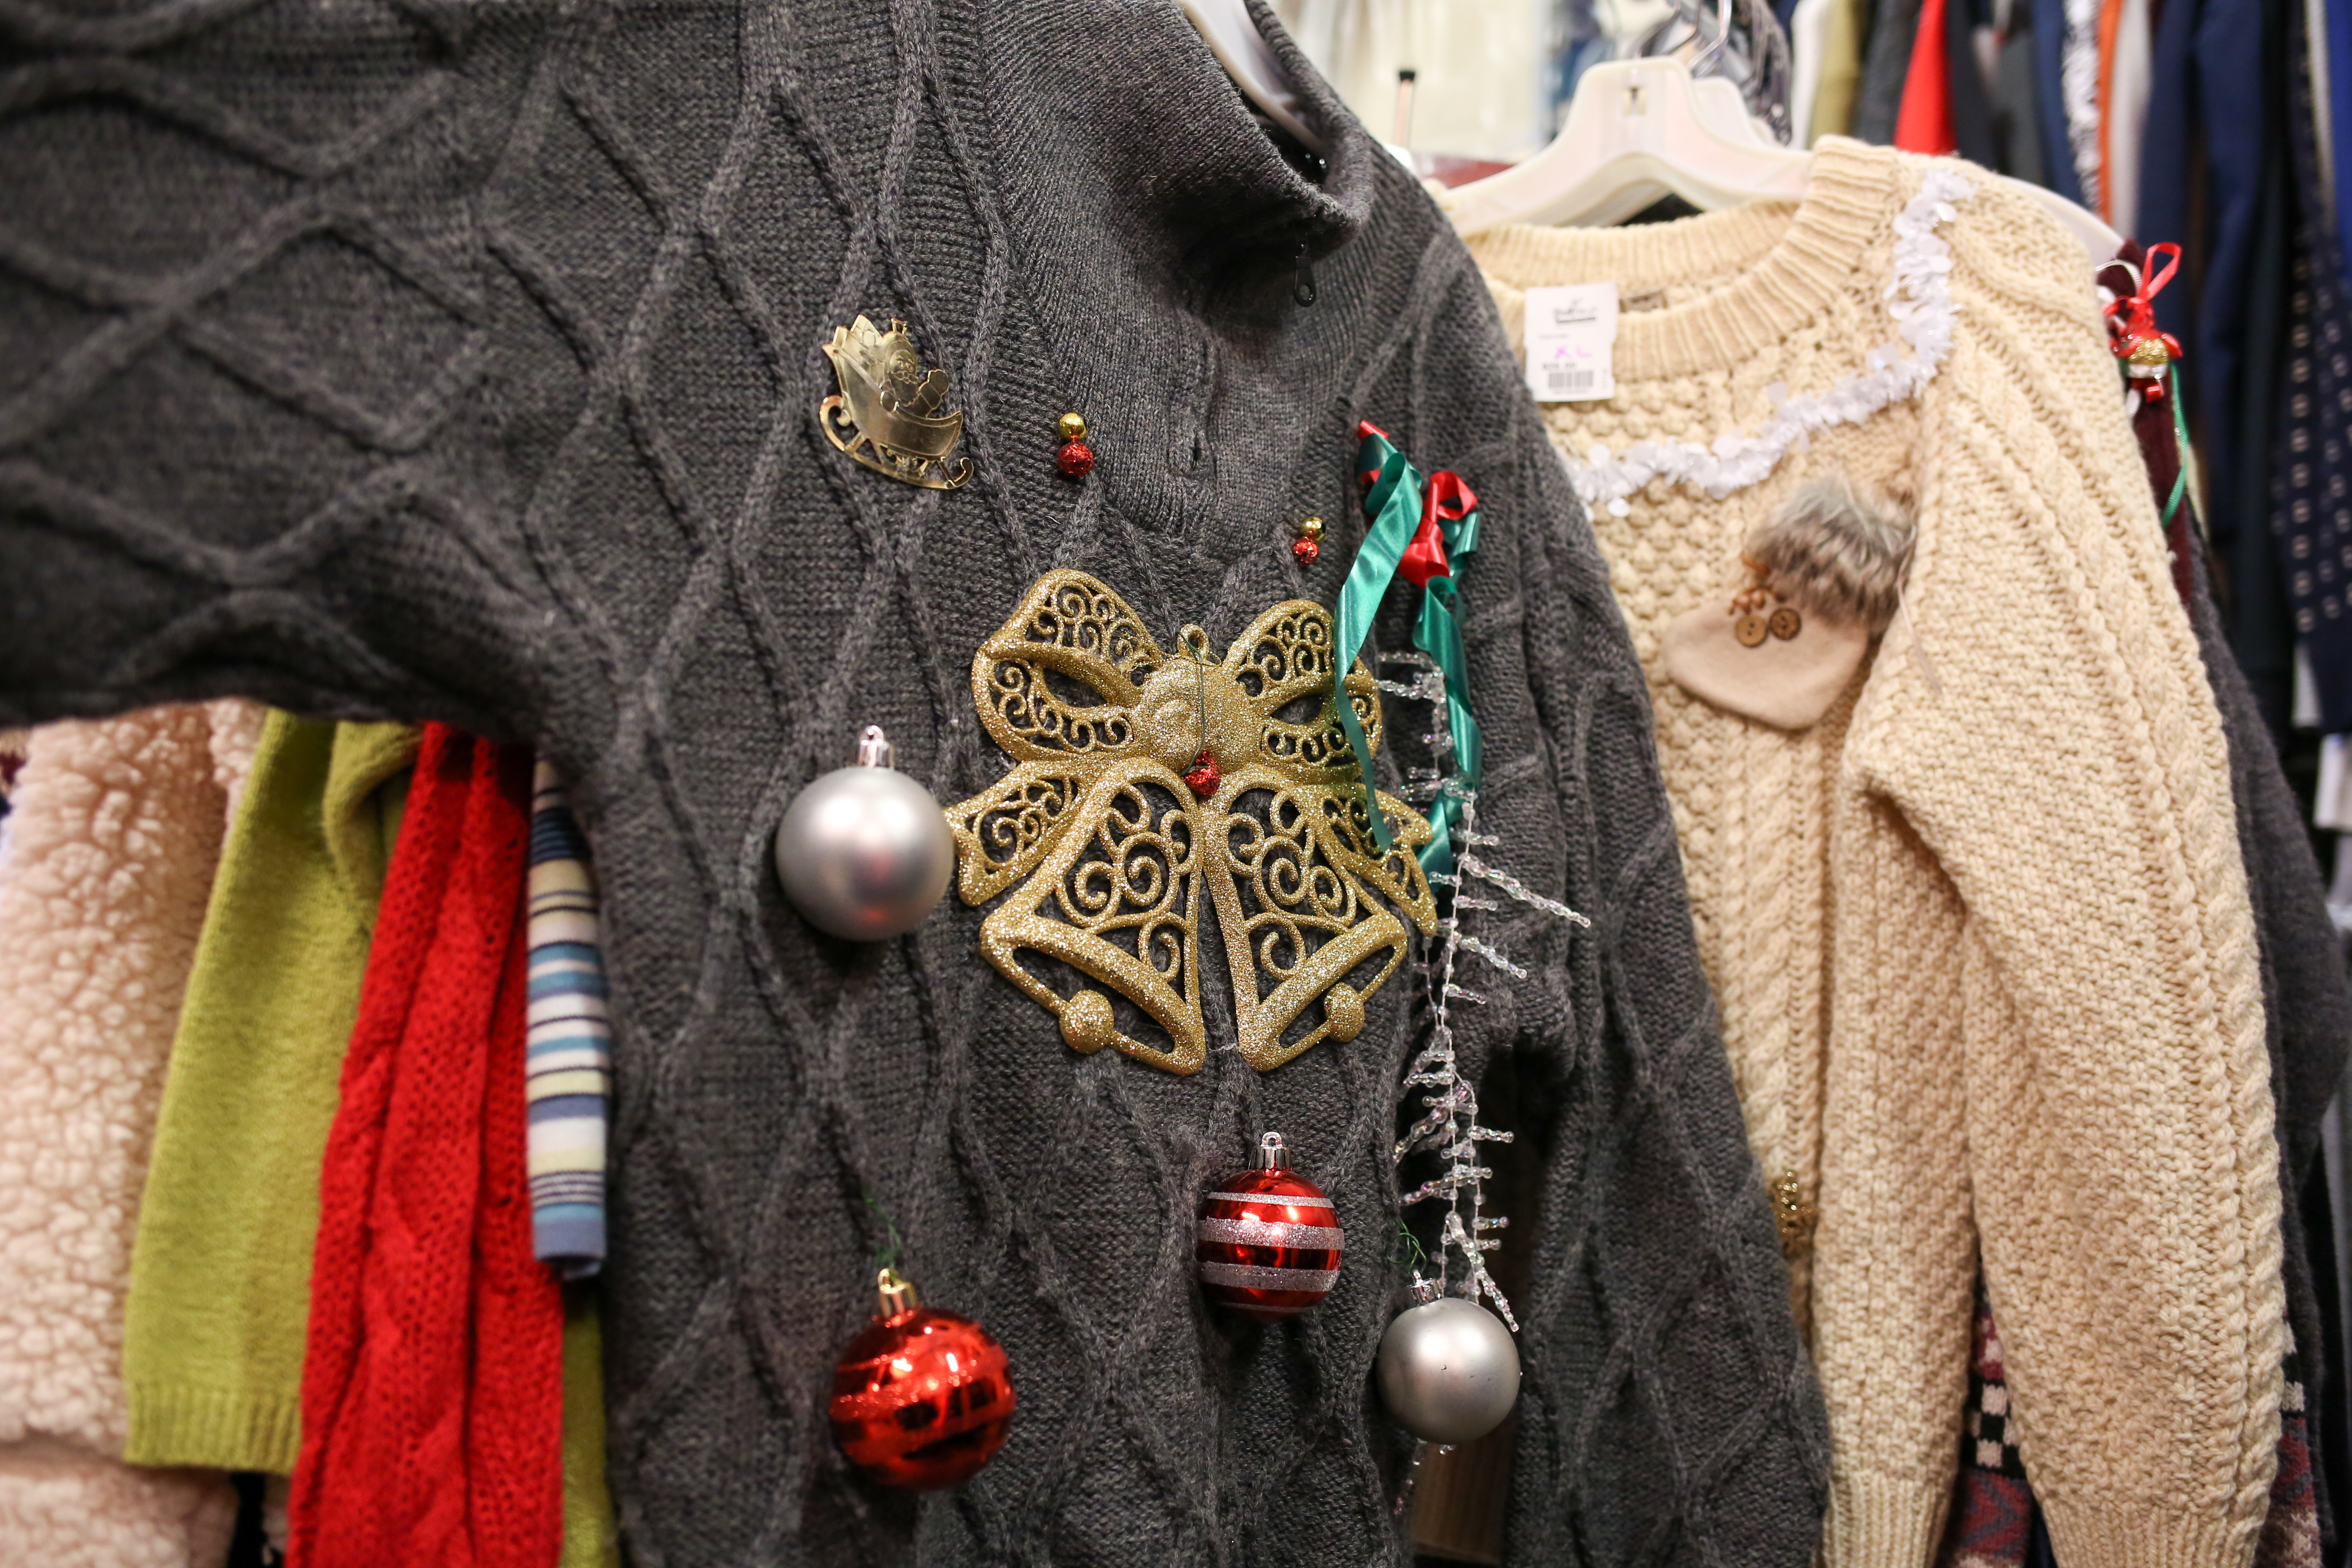 'Tis the season to desperately hunt around for something to wear to an ugly Christmas sweater party. Fortunately, there are plenty of options to scope out in D.C. stores - here were the ugliest options we found. Buffalo Exchange,{&amp;nbsp;}1318 14th St NW - $28 (Amanda Andrade-Rhoades/DC Refined)<p></p>